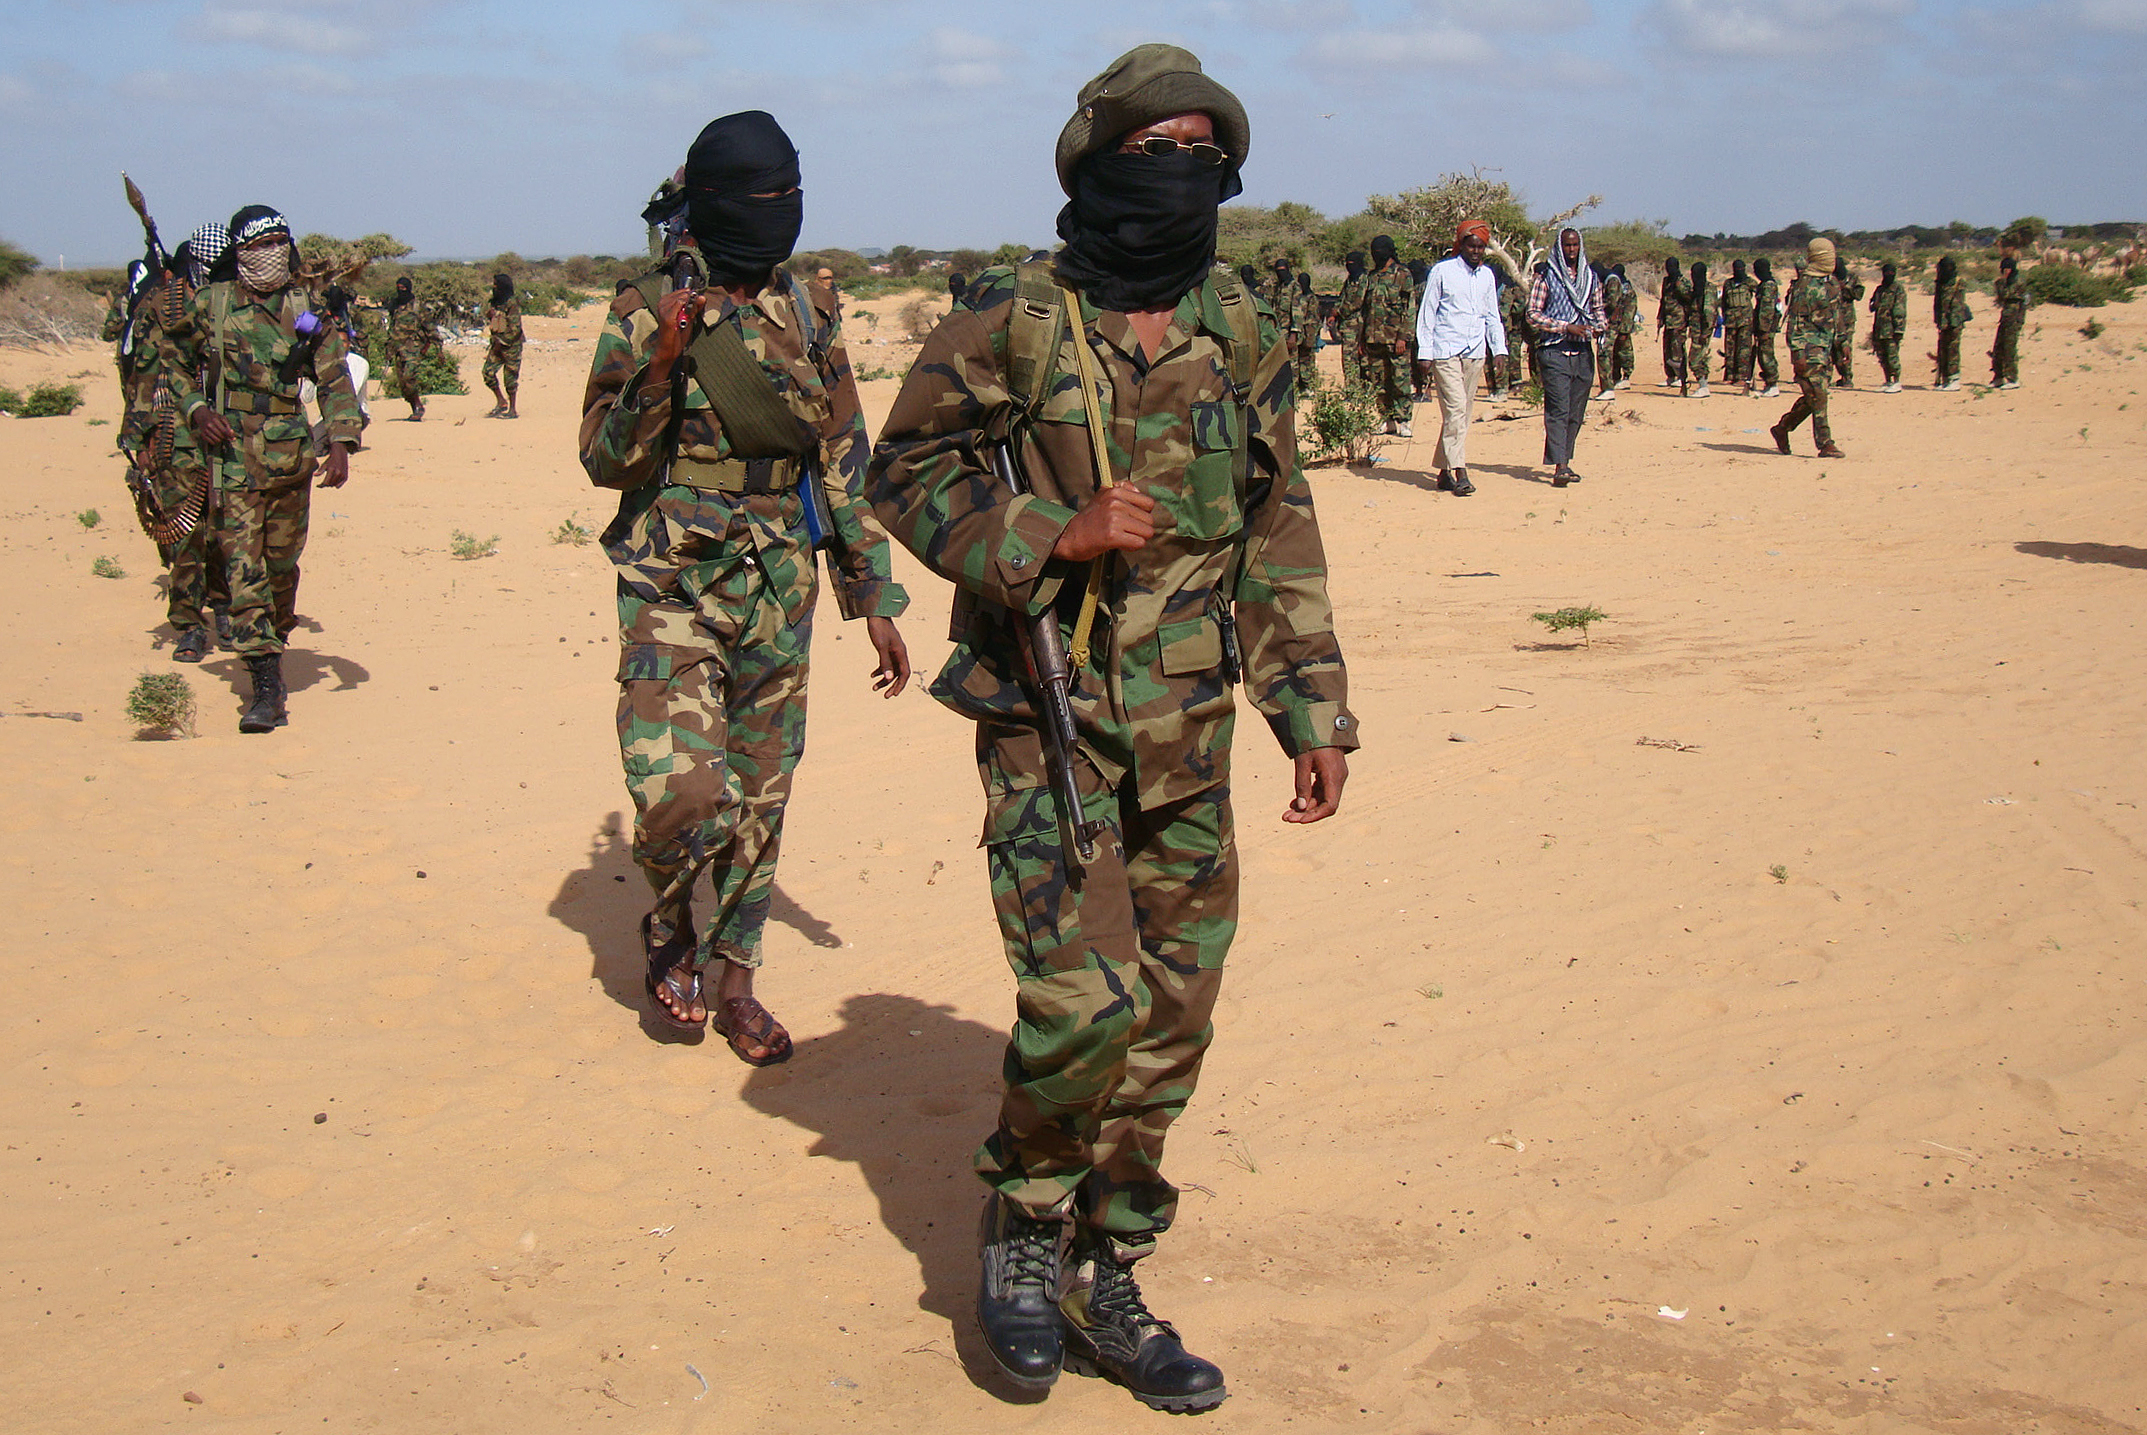 Somali Al-Shebab fighters gather on February 13, 2012 in Elasha Biyaha, in the Afgoei Corridor, after a demonstration to support the merger of Al-shebab and the Al-Qaeda network. (Mohamed Abdiwahab/AFP via Getty Images)